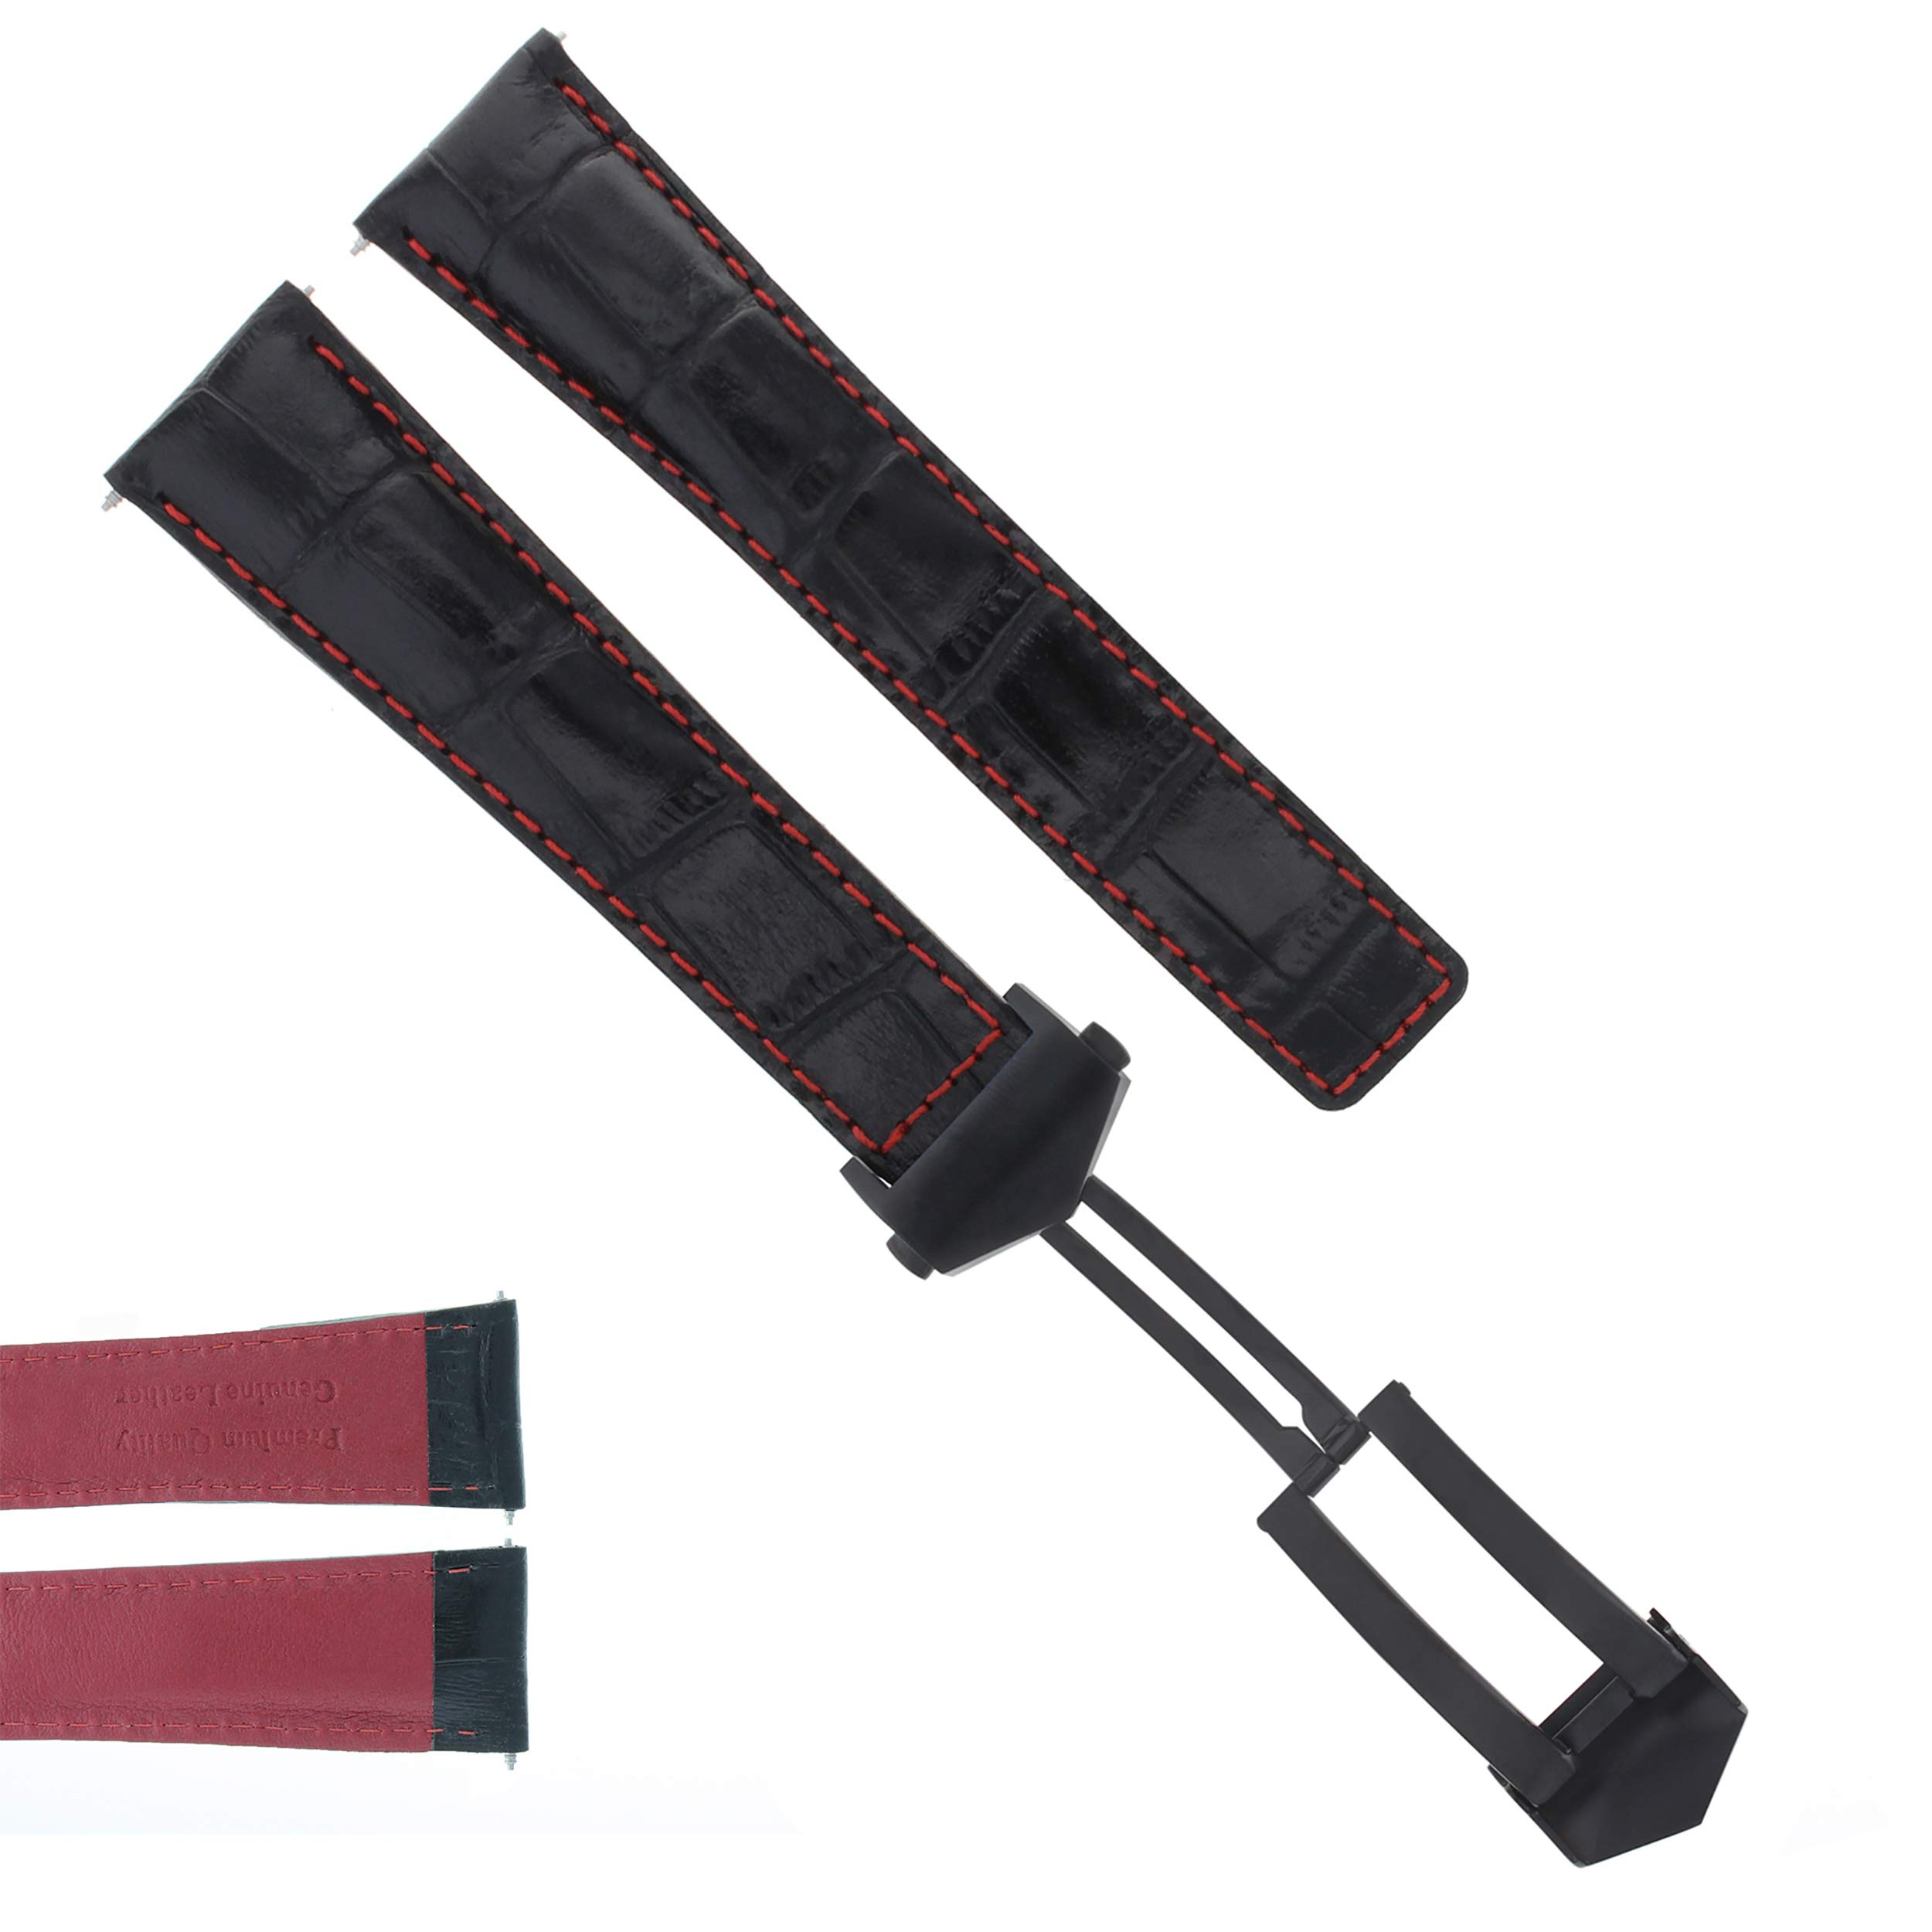 22MM Leather Strap Band Clasp for TAG HEUER Calibre 36 Black RED Stitch 3TCB